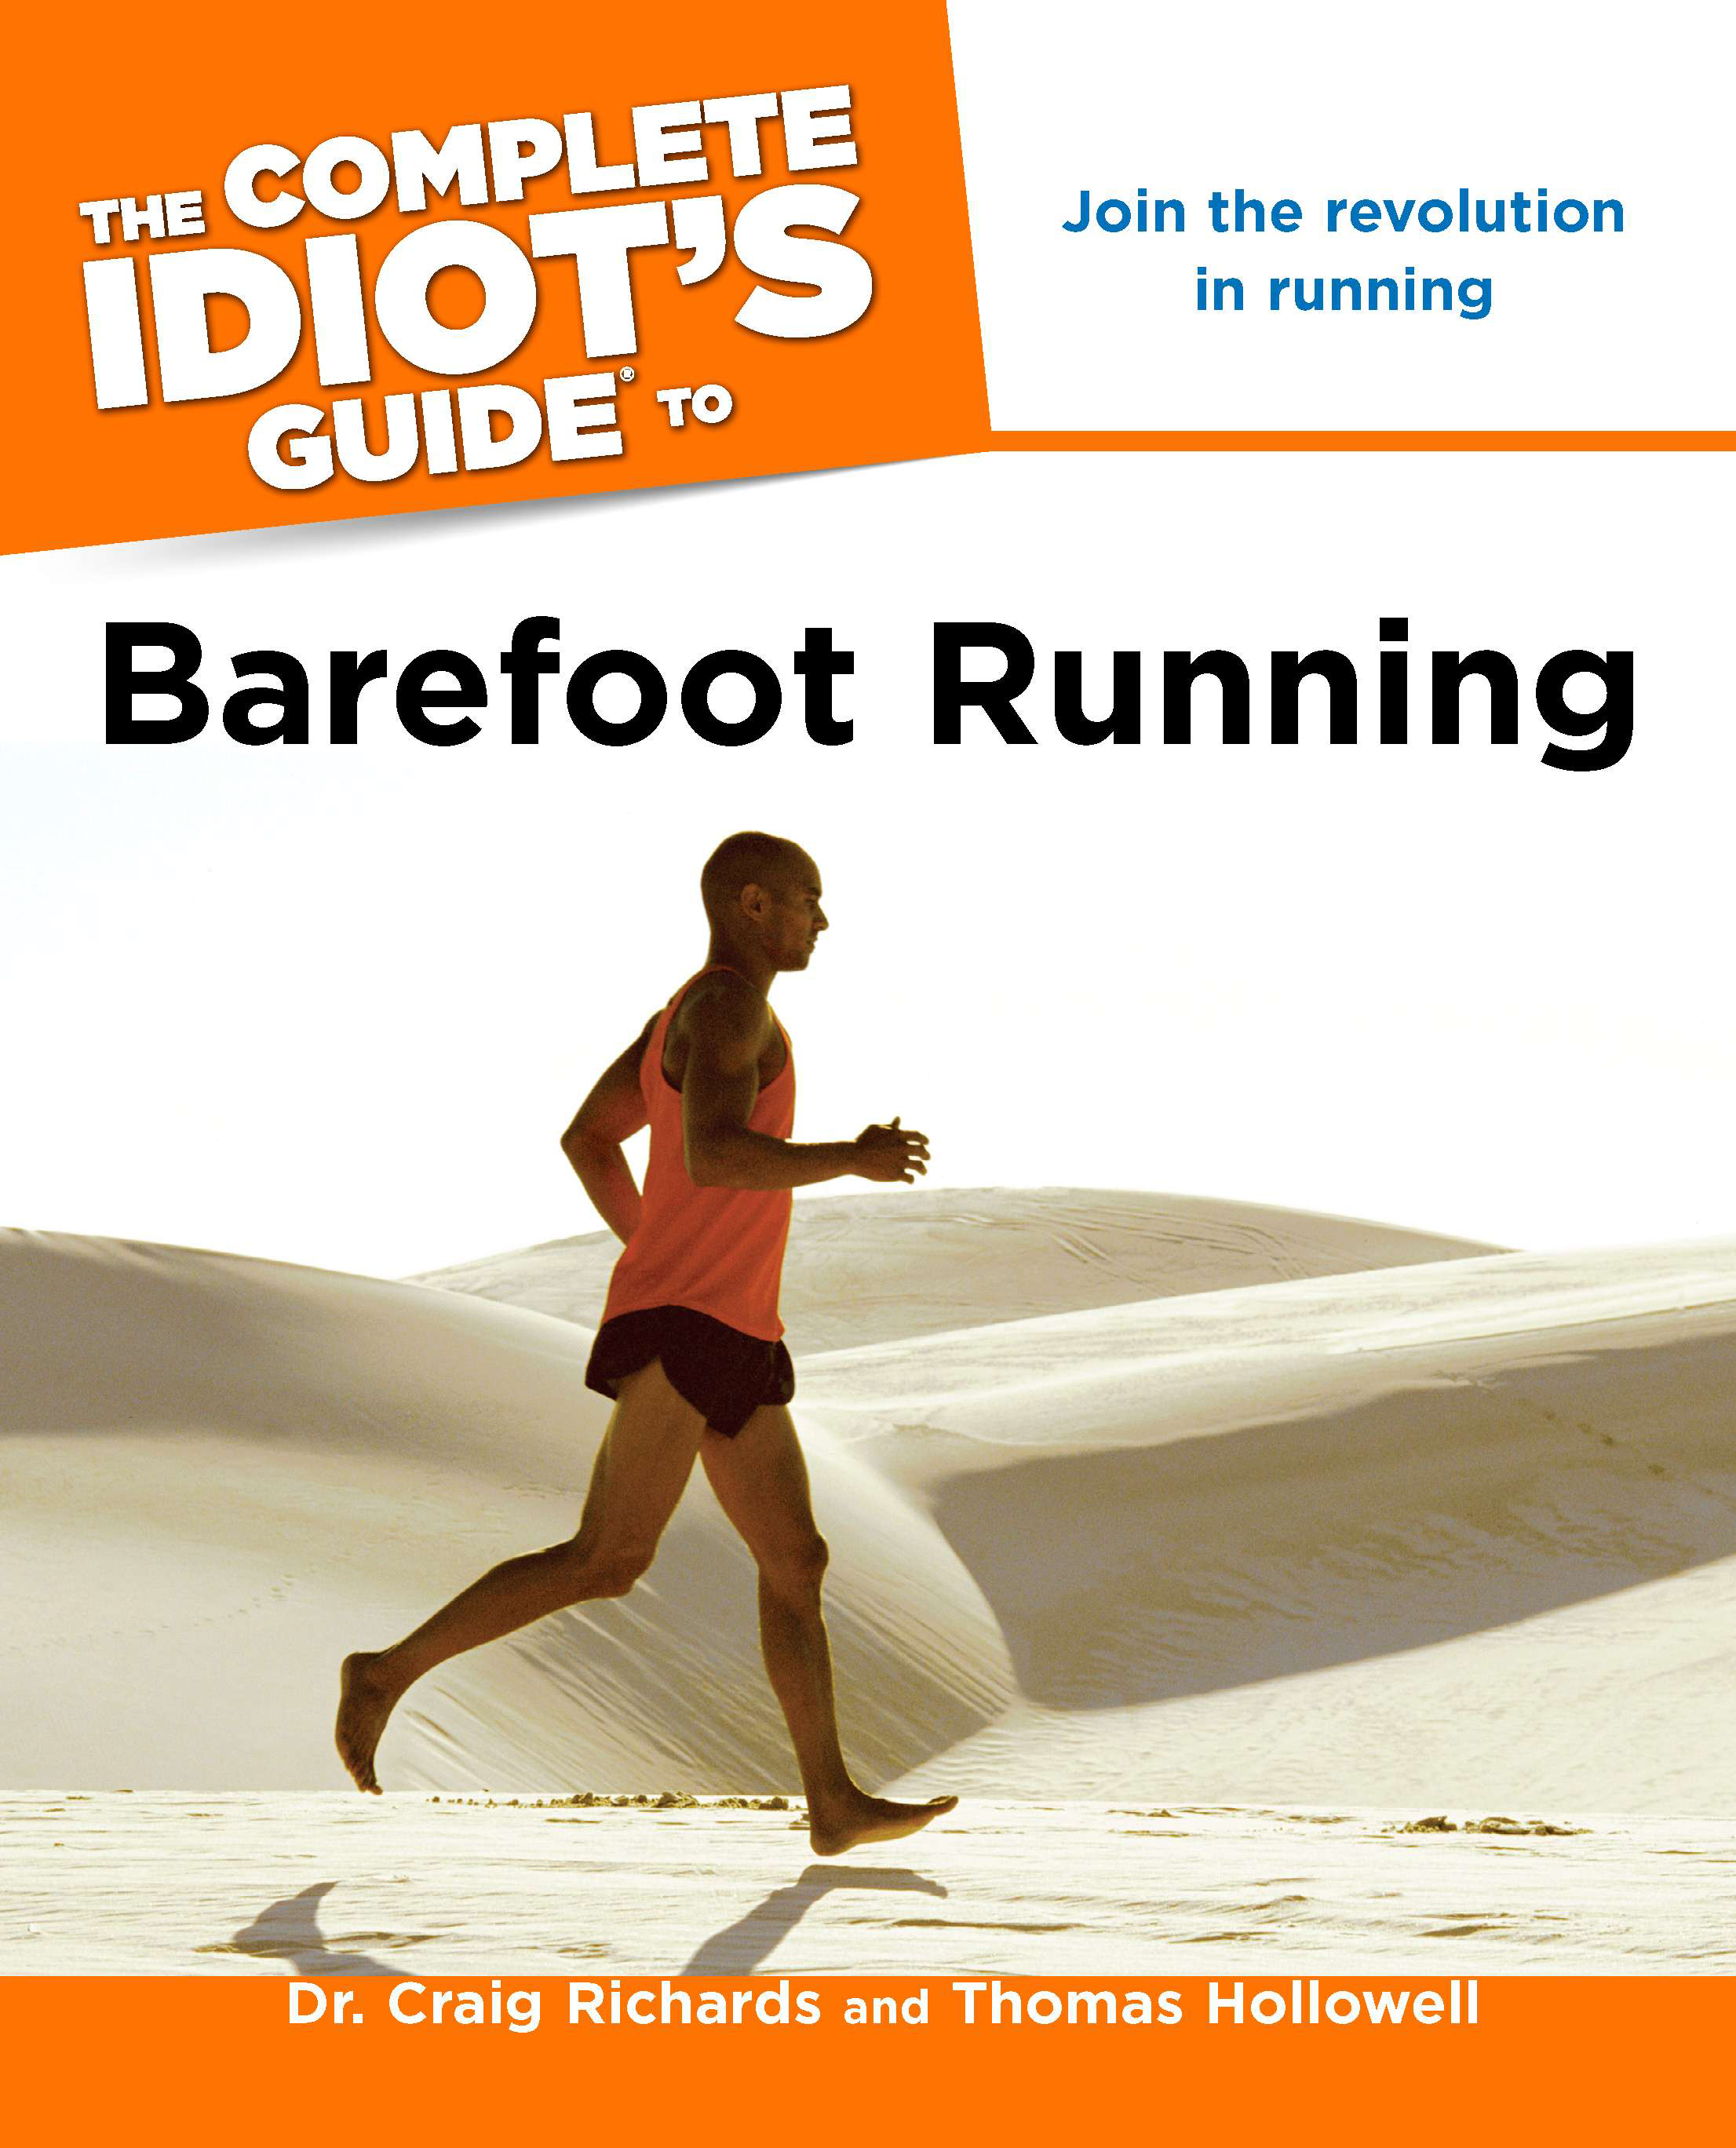 The Complete Idiot's Guide to Barefoot Running